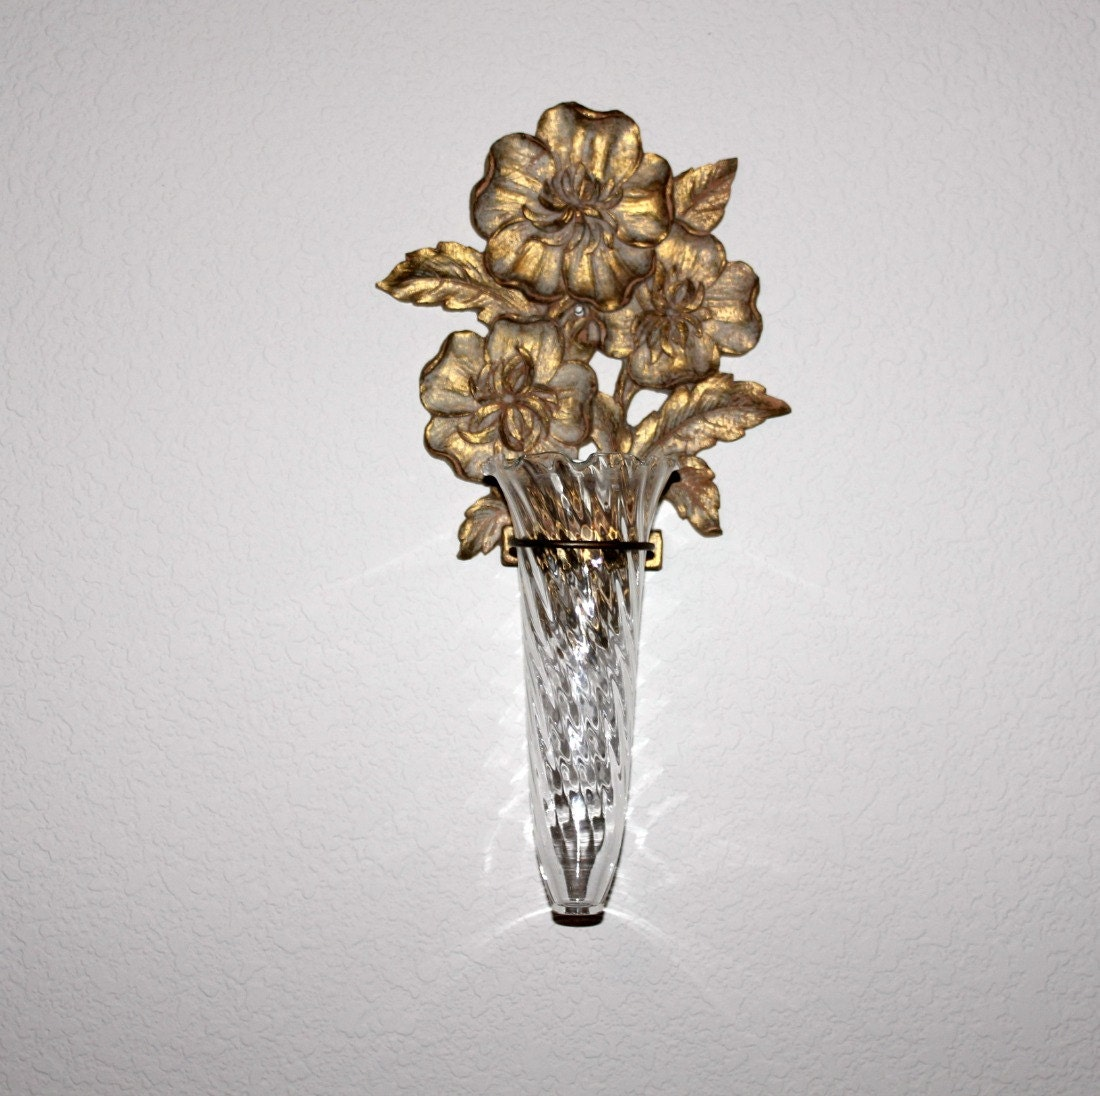 Wall Sconces That Hold Flowers: Vintage Syroco Wood Gold Wall Sconce Bud Flower By